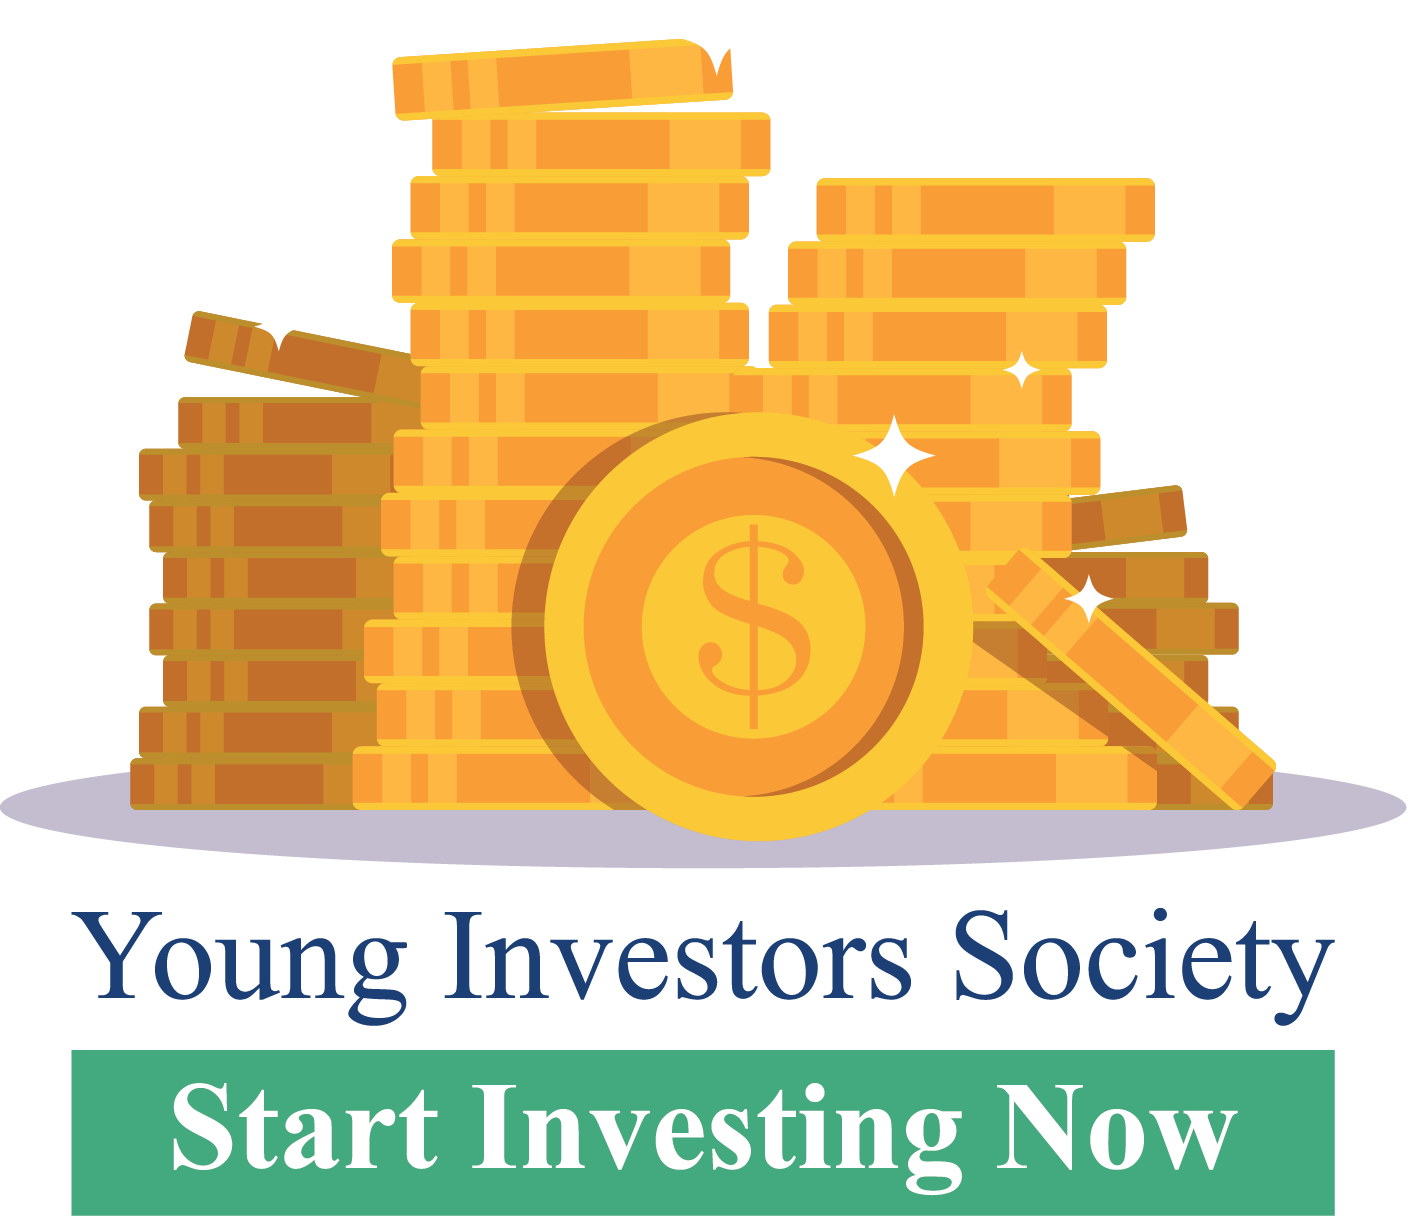 Enter the Start Investing NOW Giveaway for March!